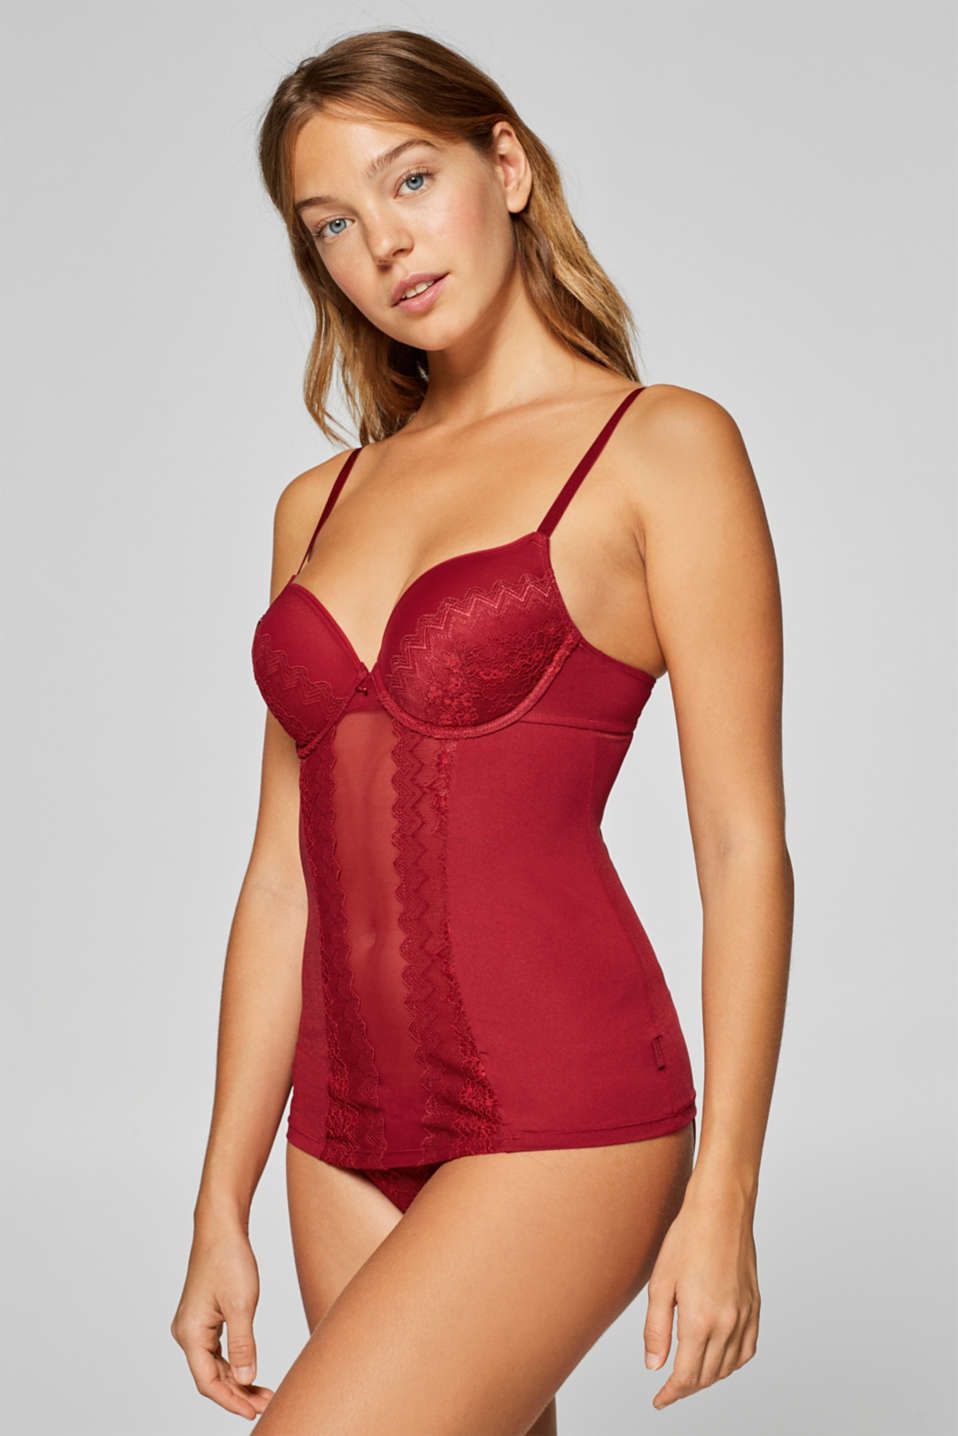 Esprit - Camisole with lace padded underwire cups